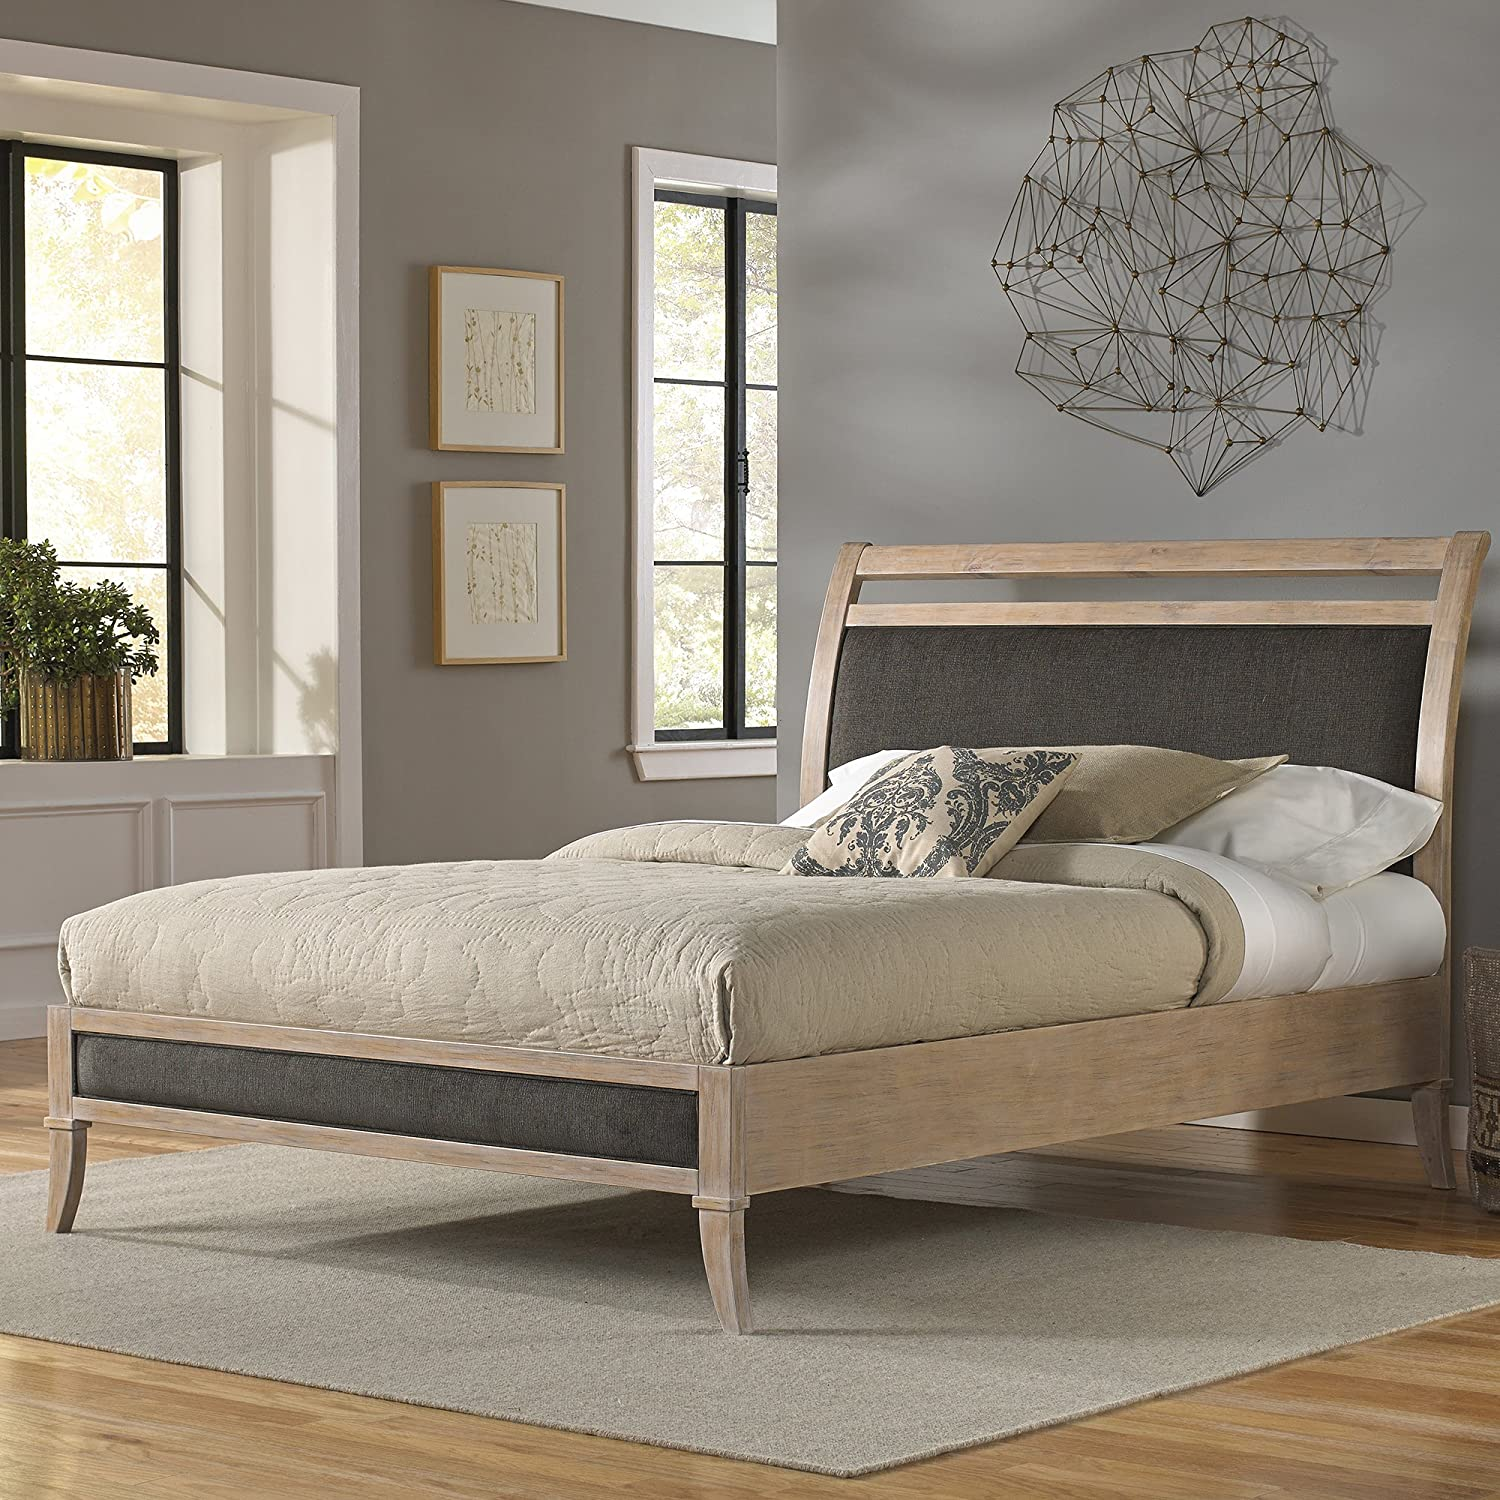 king delightful size plans professional perfect markthedev platform com bed